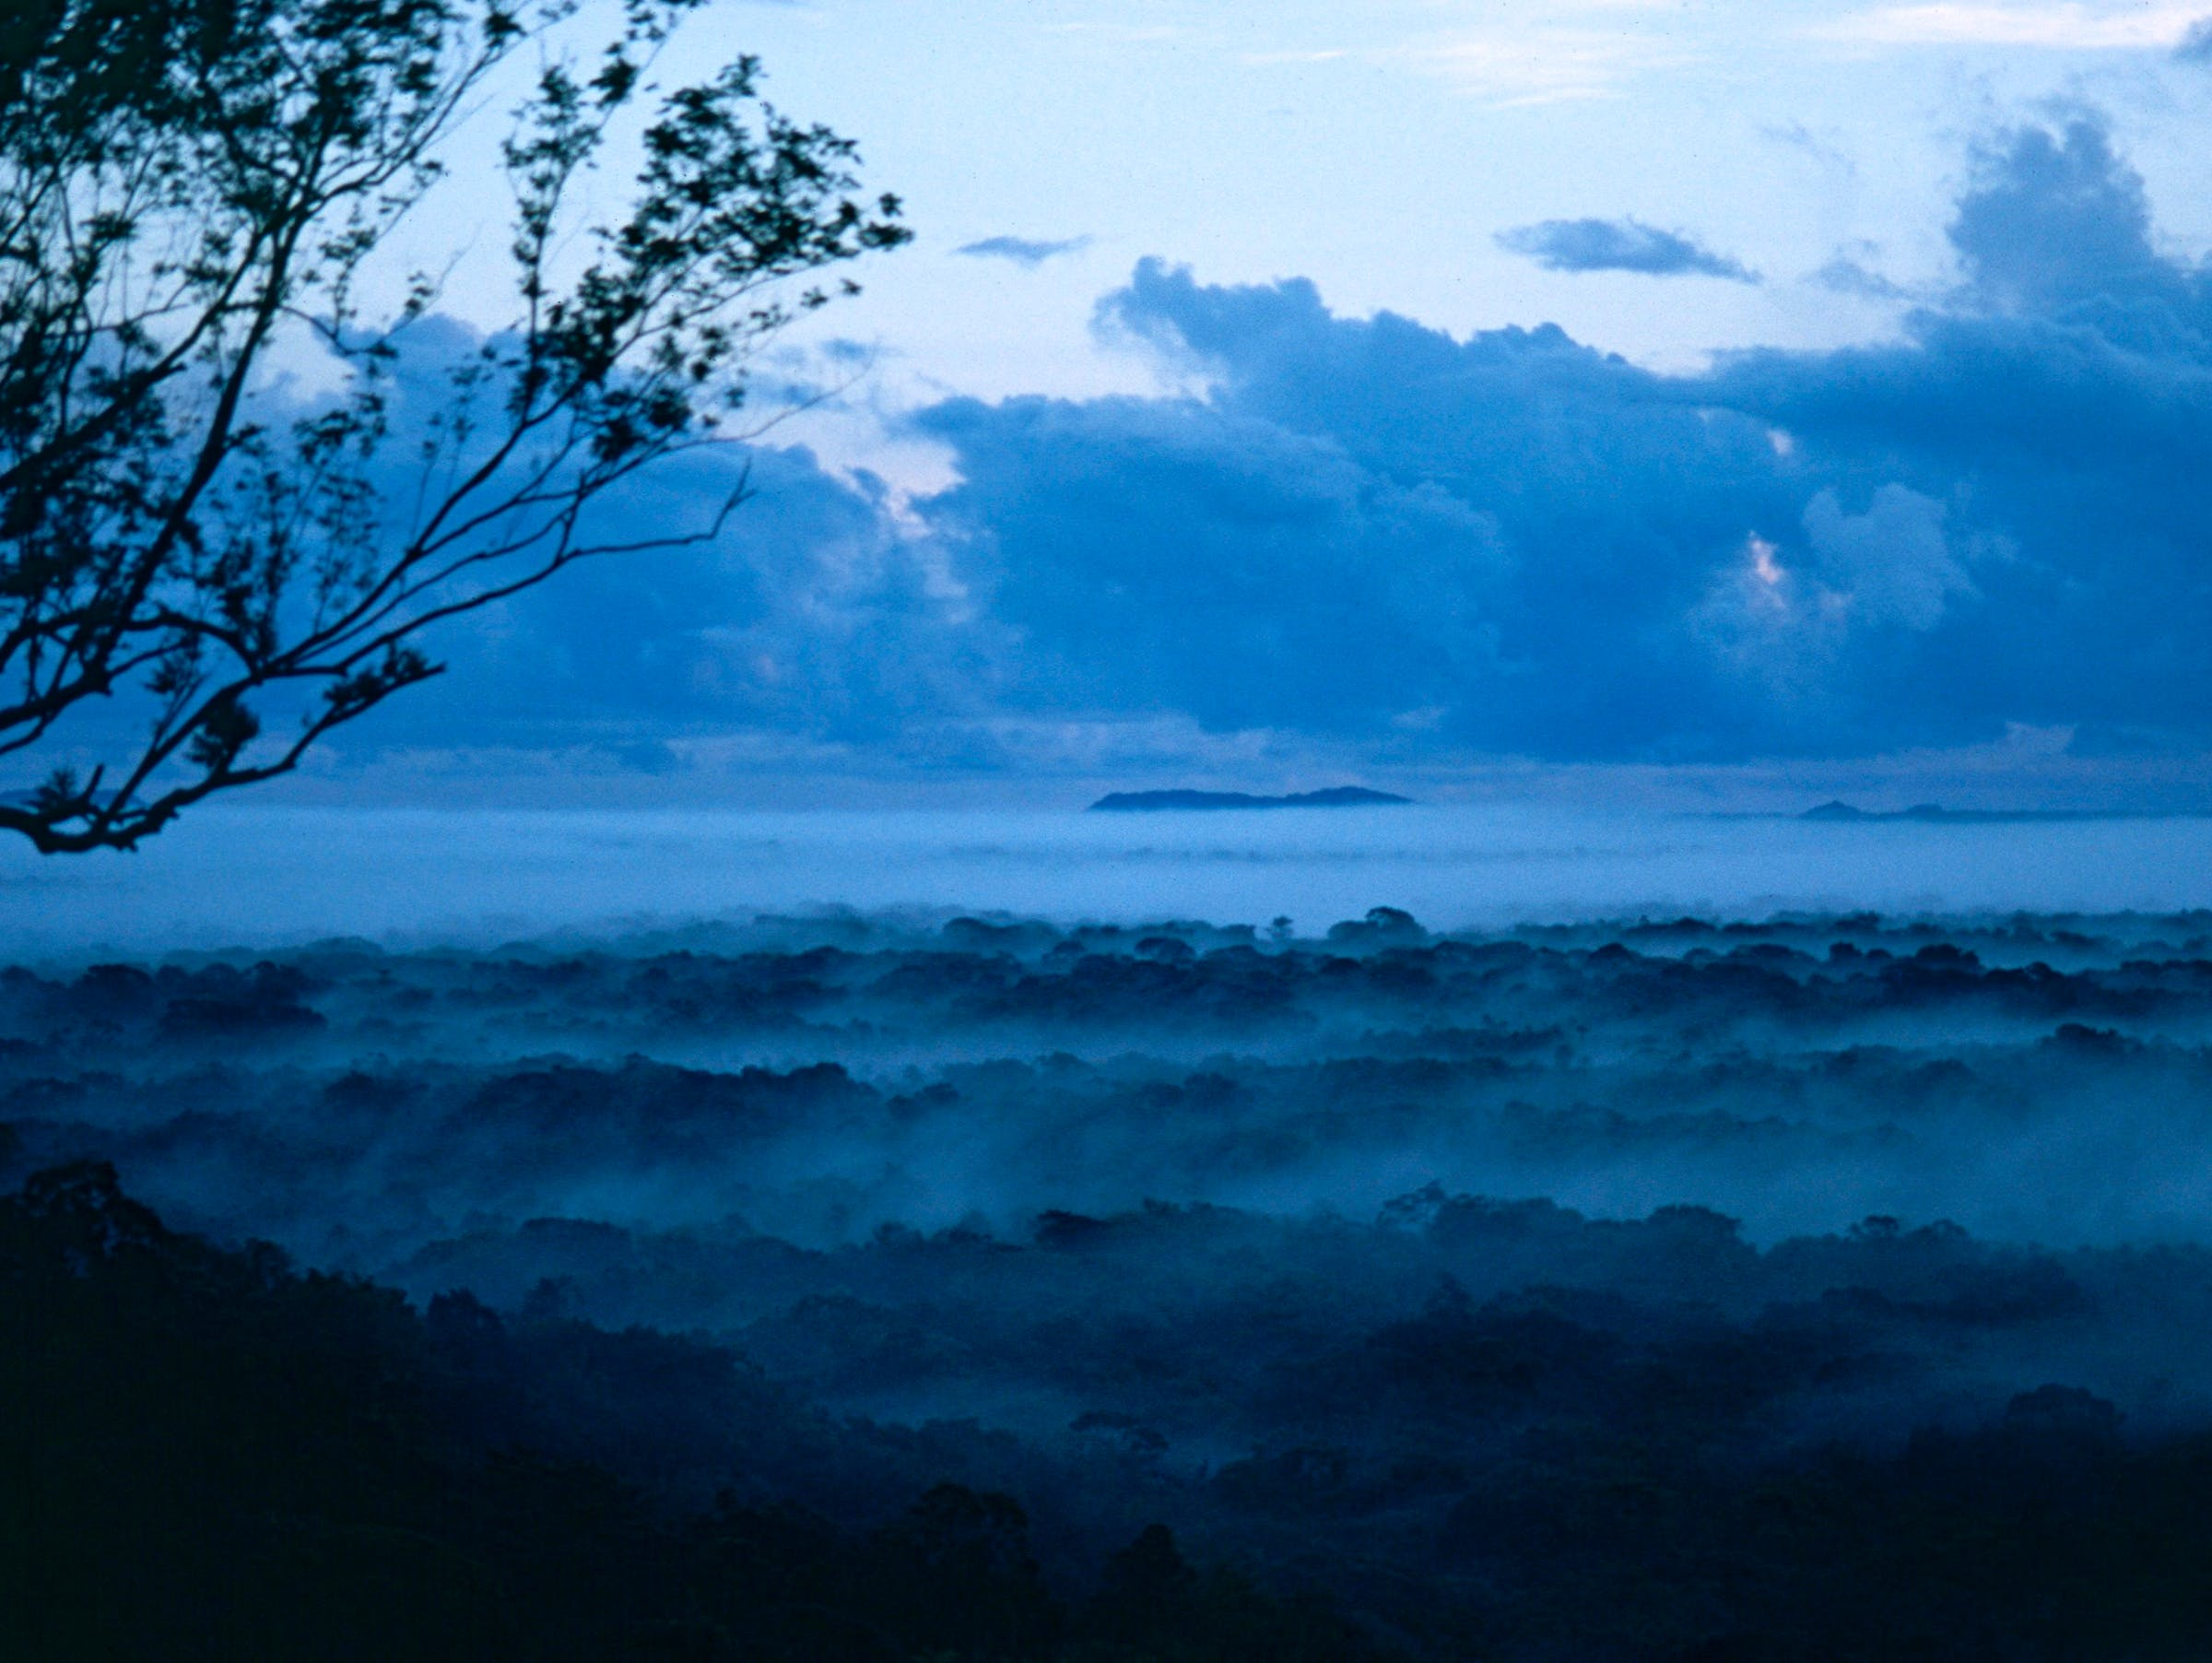 Morning Mist over the Jungle